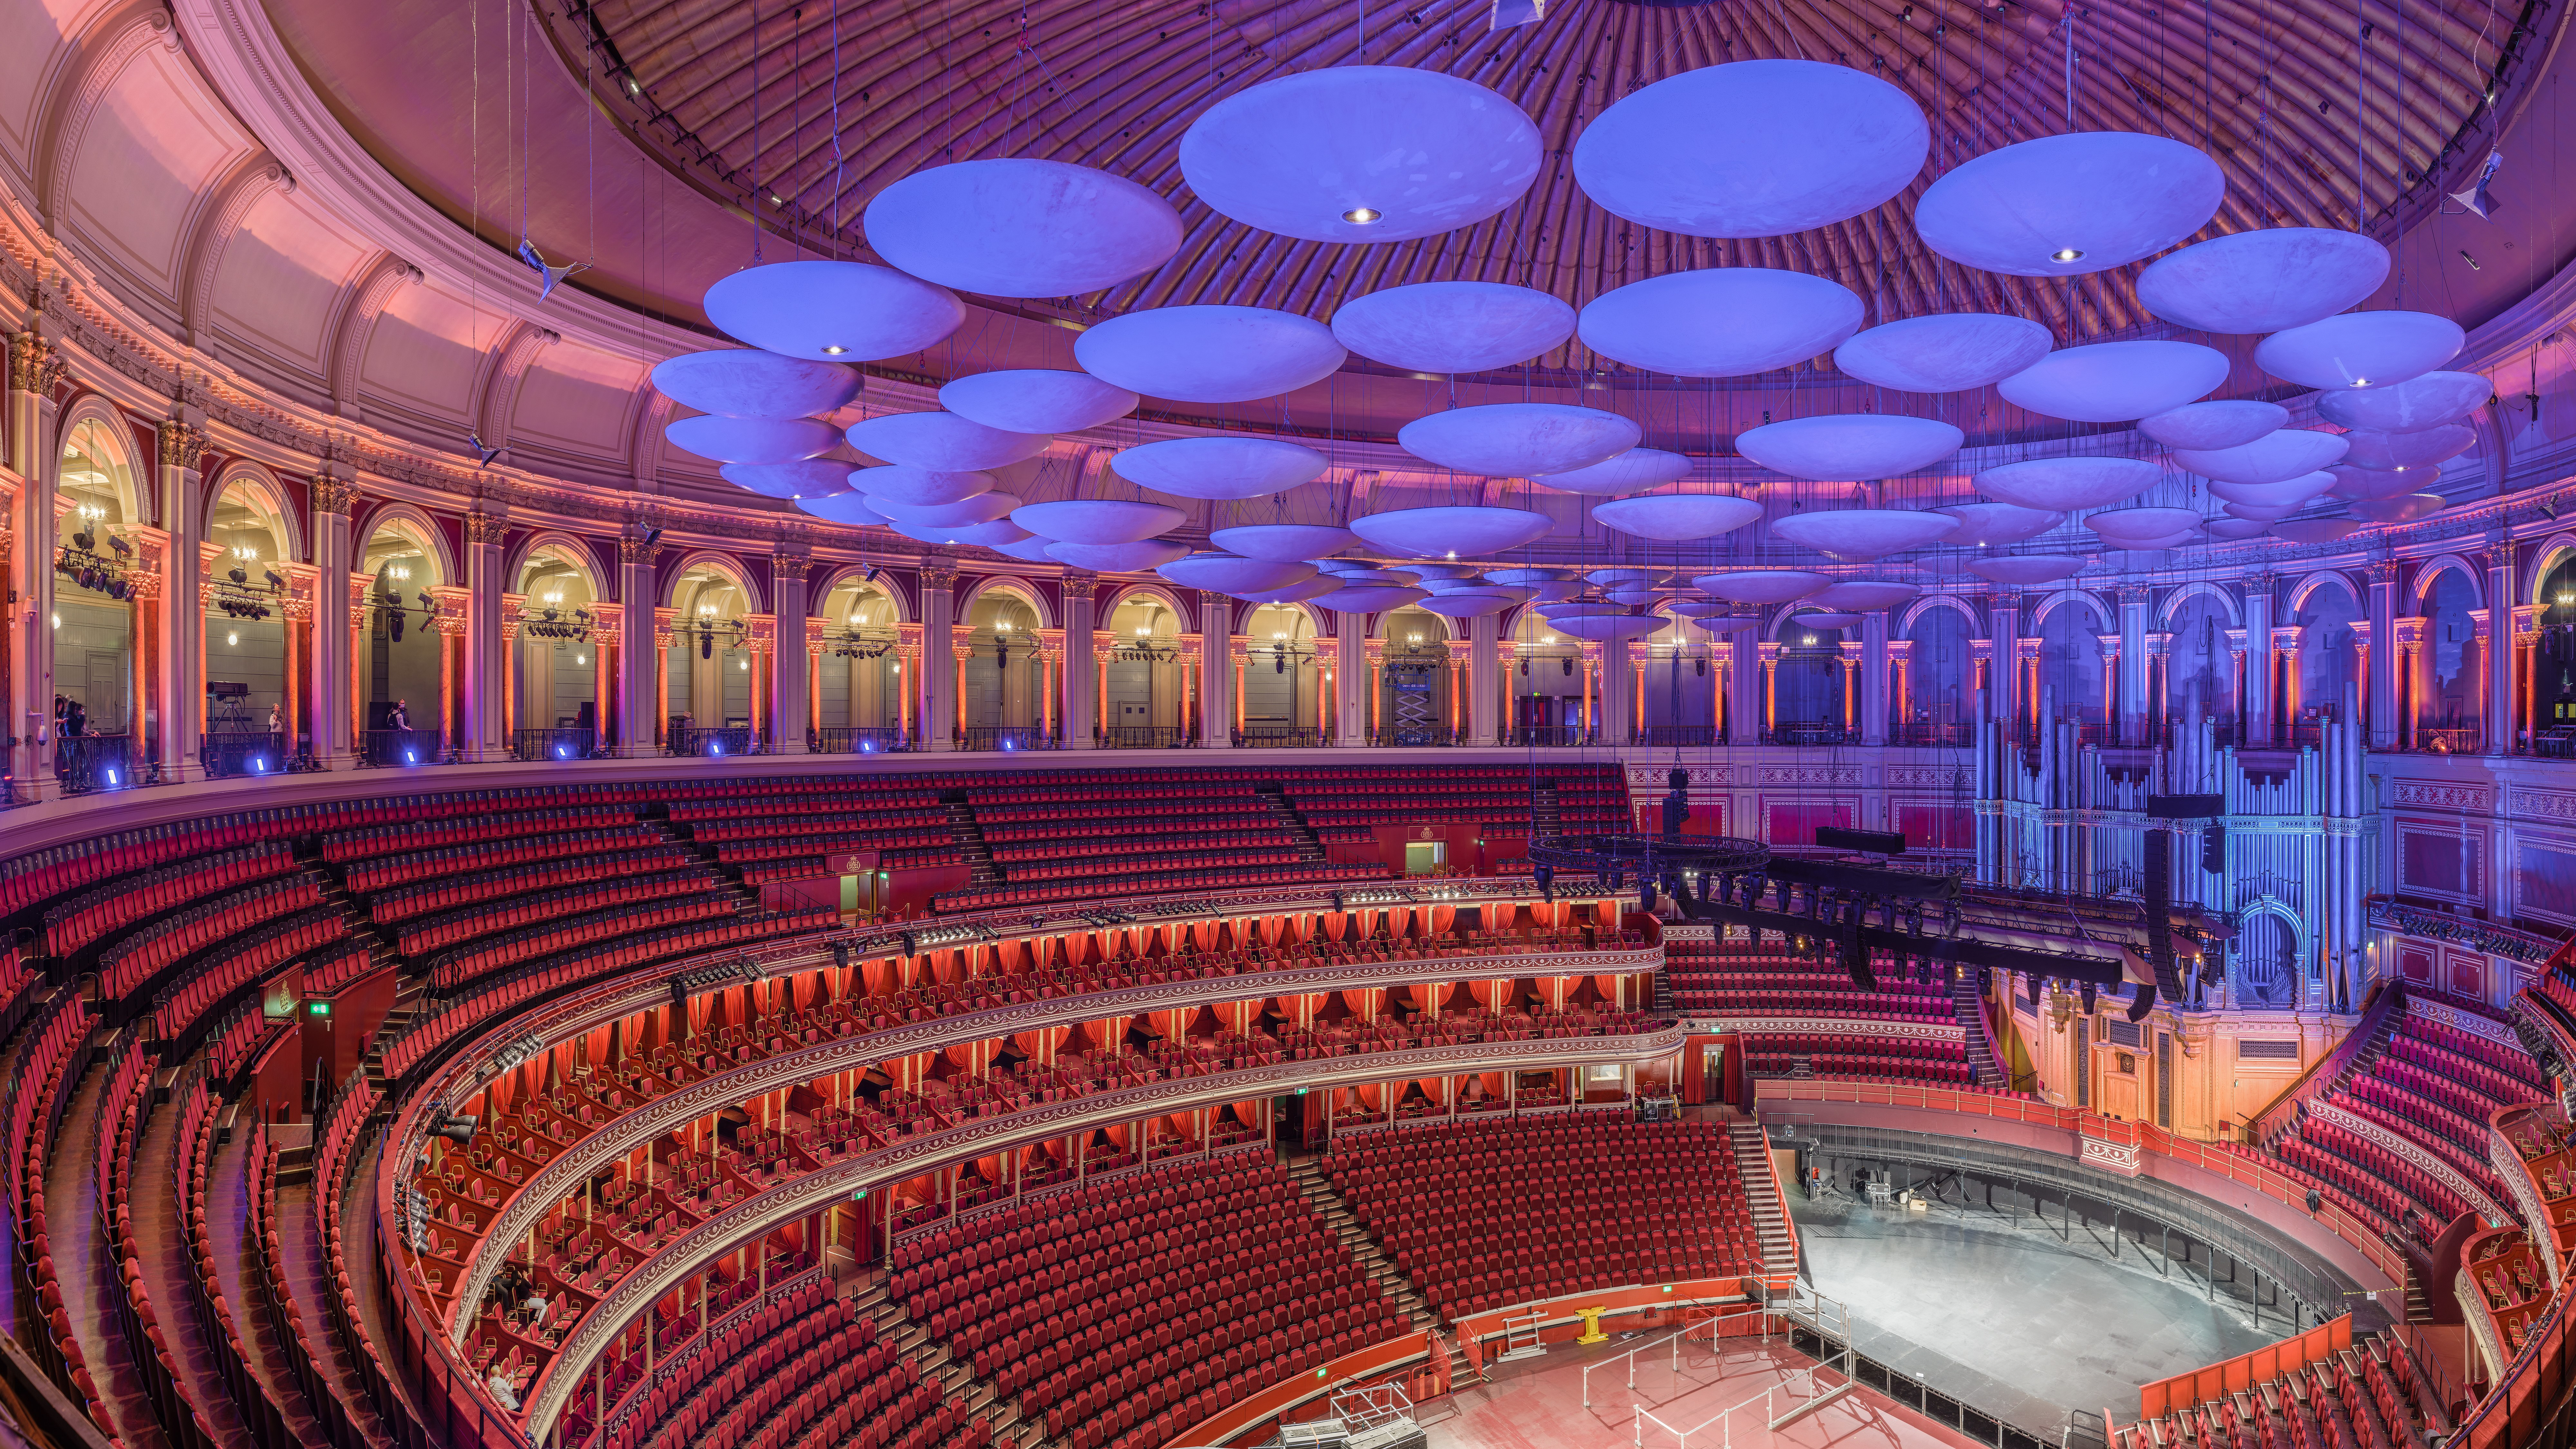 Commonsfeatured Picture Candidates Log October 2016 Wikimedia Commons View Topic Fishing 14 2 Romex From Exterior Wall Light To Underbelly Royal Albert Hall Gallery